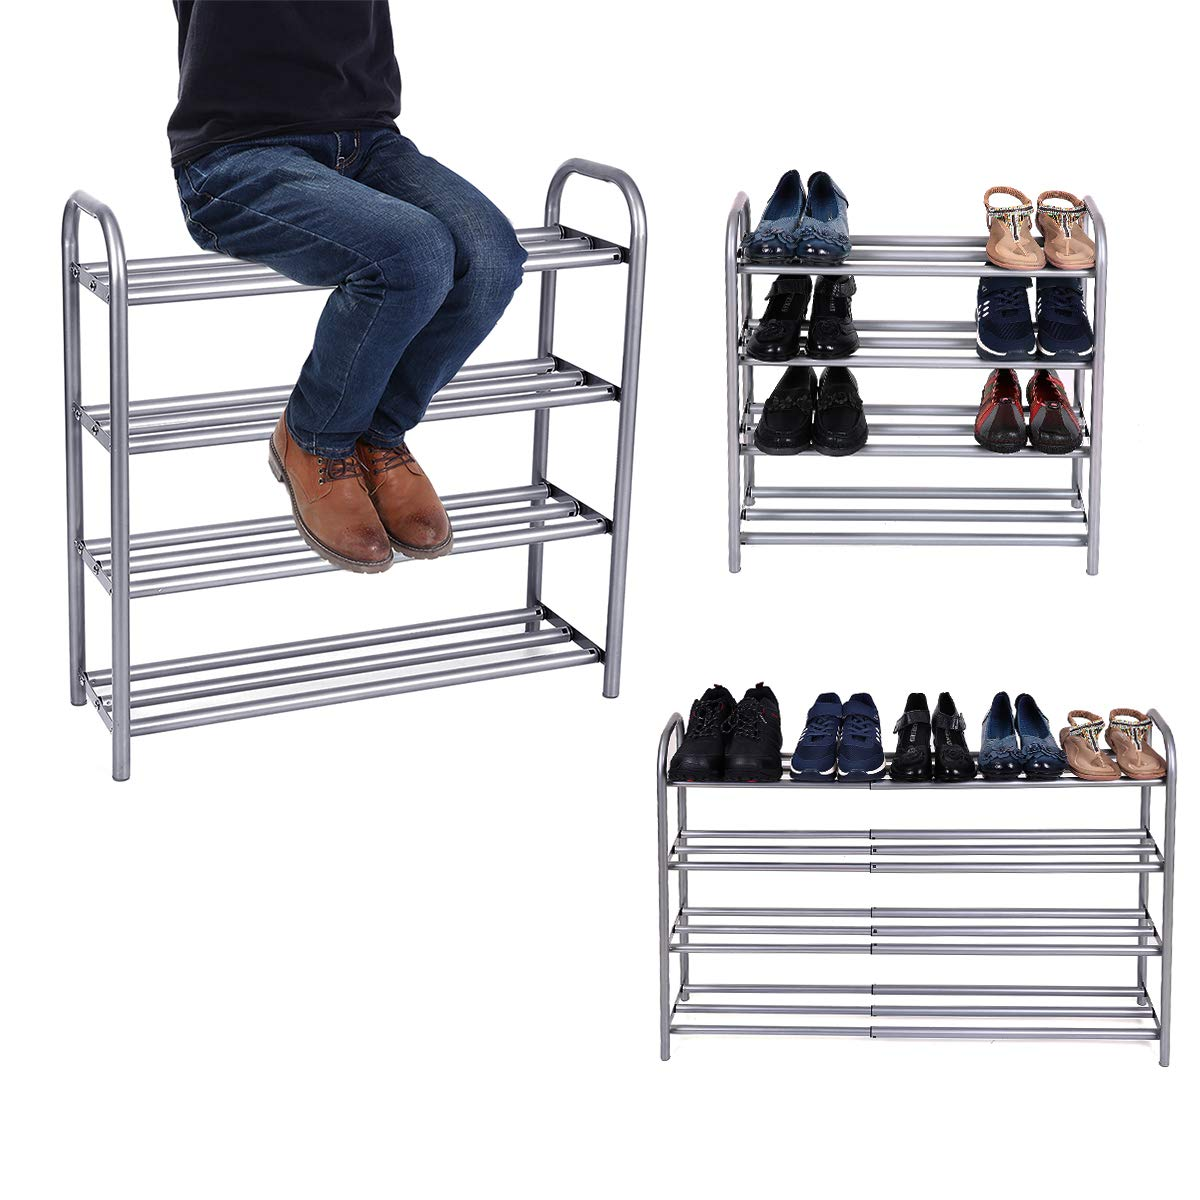 "GEMITTO 4 Layers Extendable Shoe Organiser Rack Heavy Duty Shoe Stand Storage Rack Coated Painted Silver Grey 23.62""-41.73""x8.86""x24.21"""